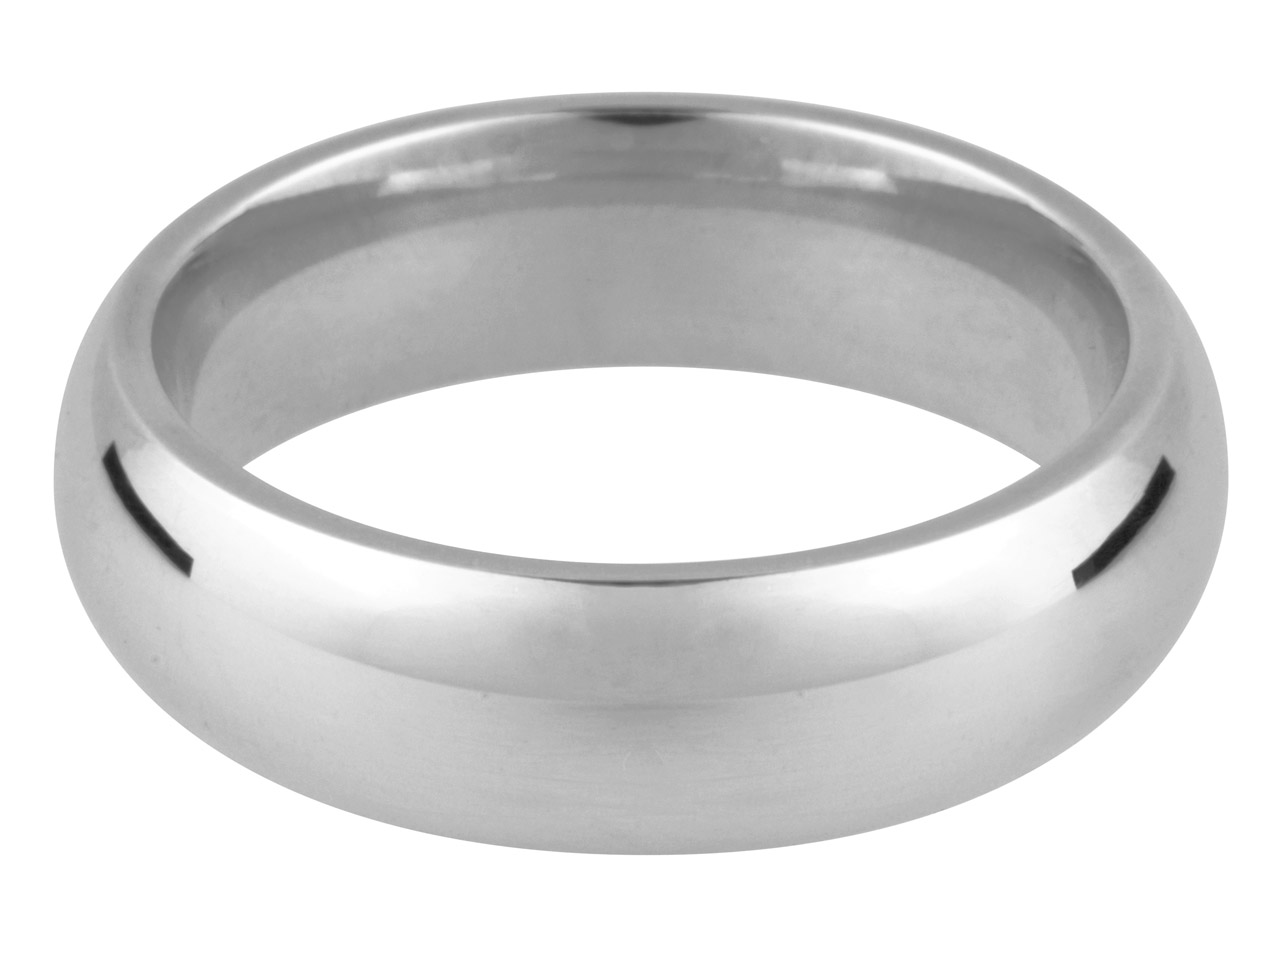 Palladium Court Wedding Ring 2.5mm J 2.6gms Medium Weight Hallmarked  Wall Thickness 1.66mm